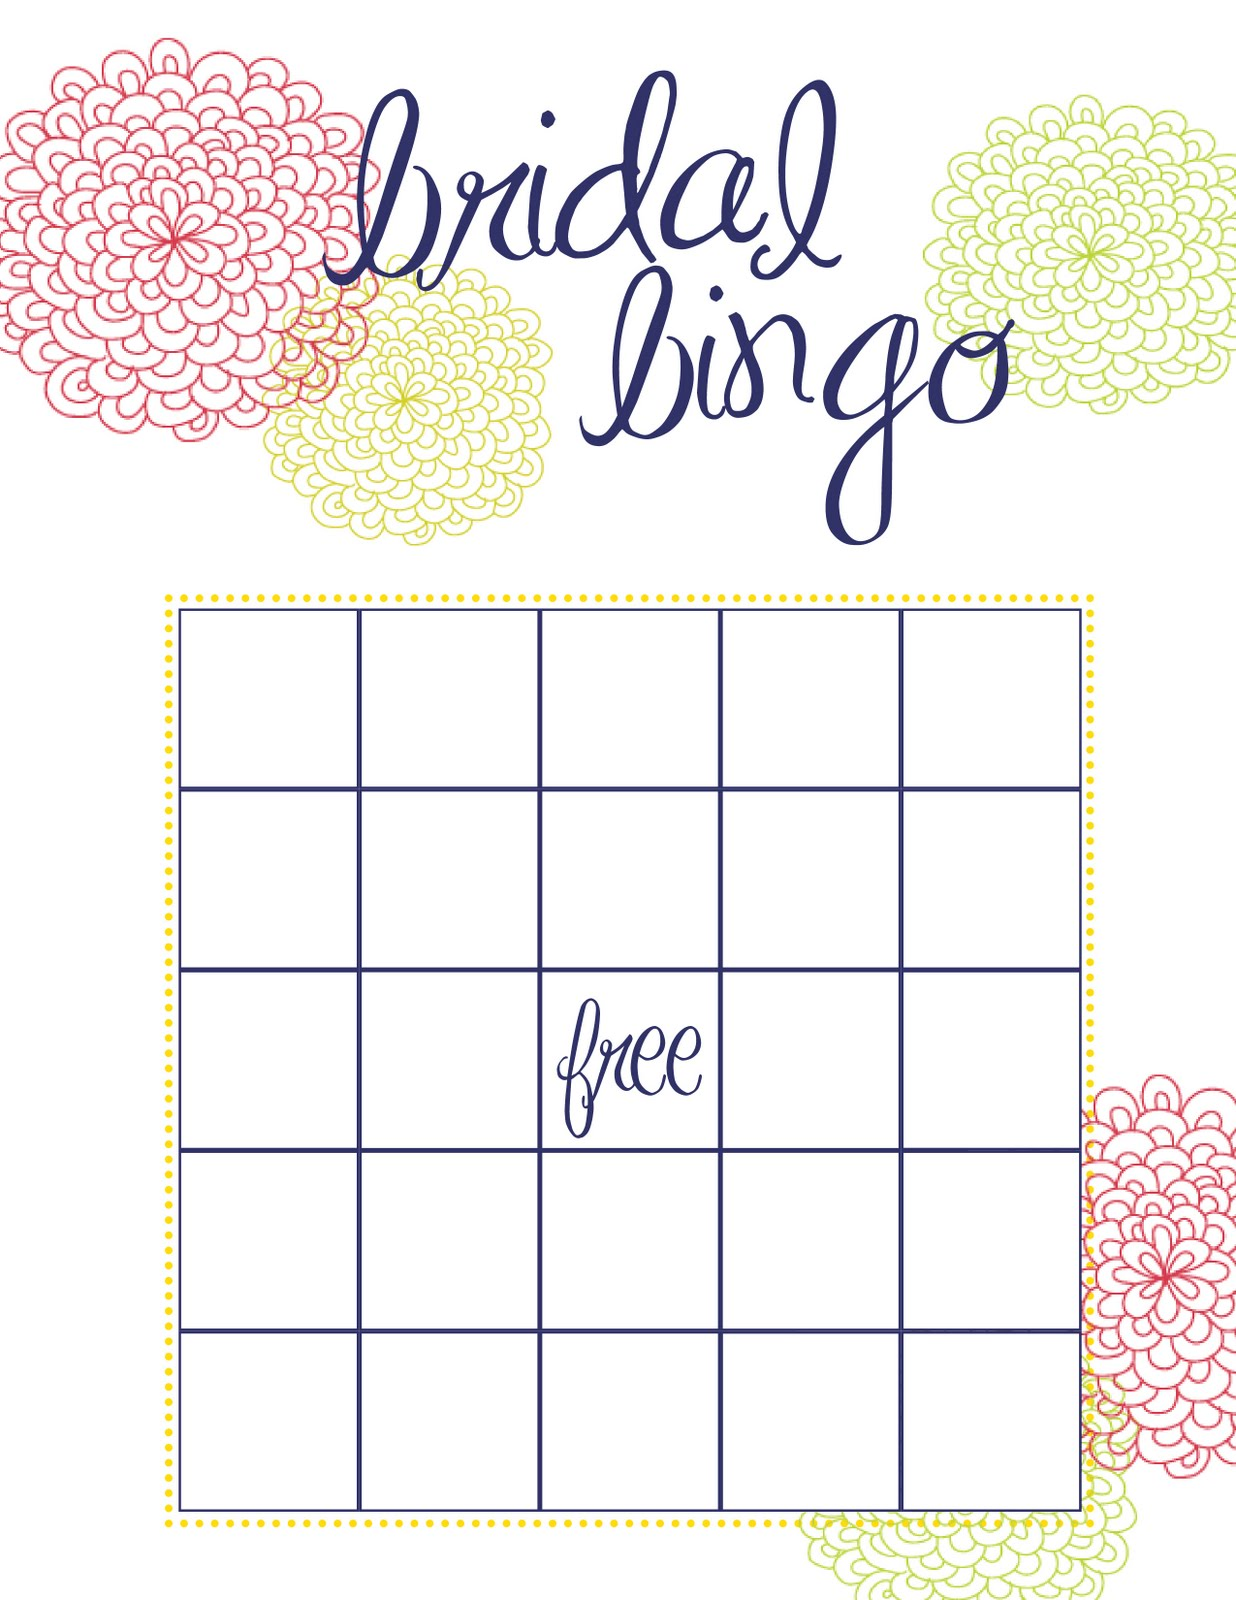 It is an image of Punchy Bingo Boards Printable